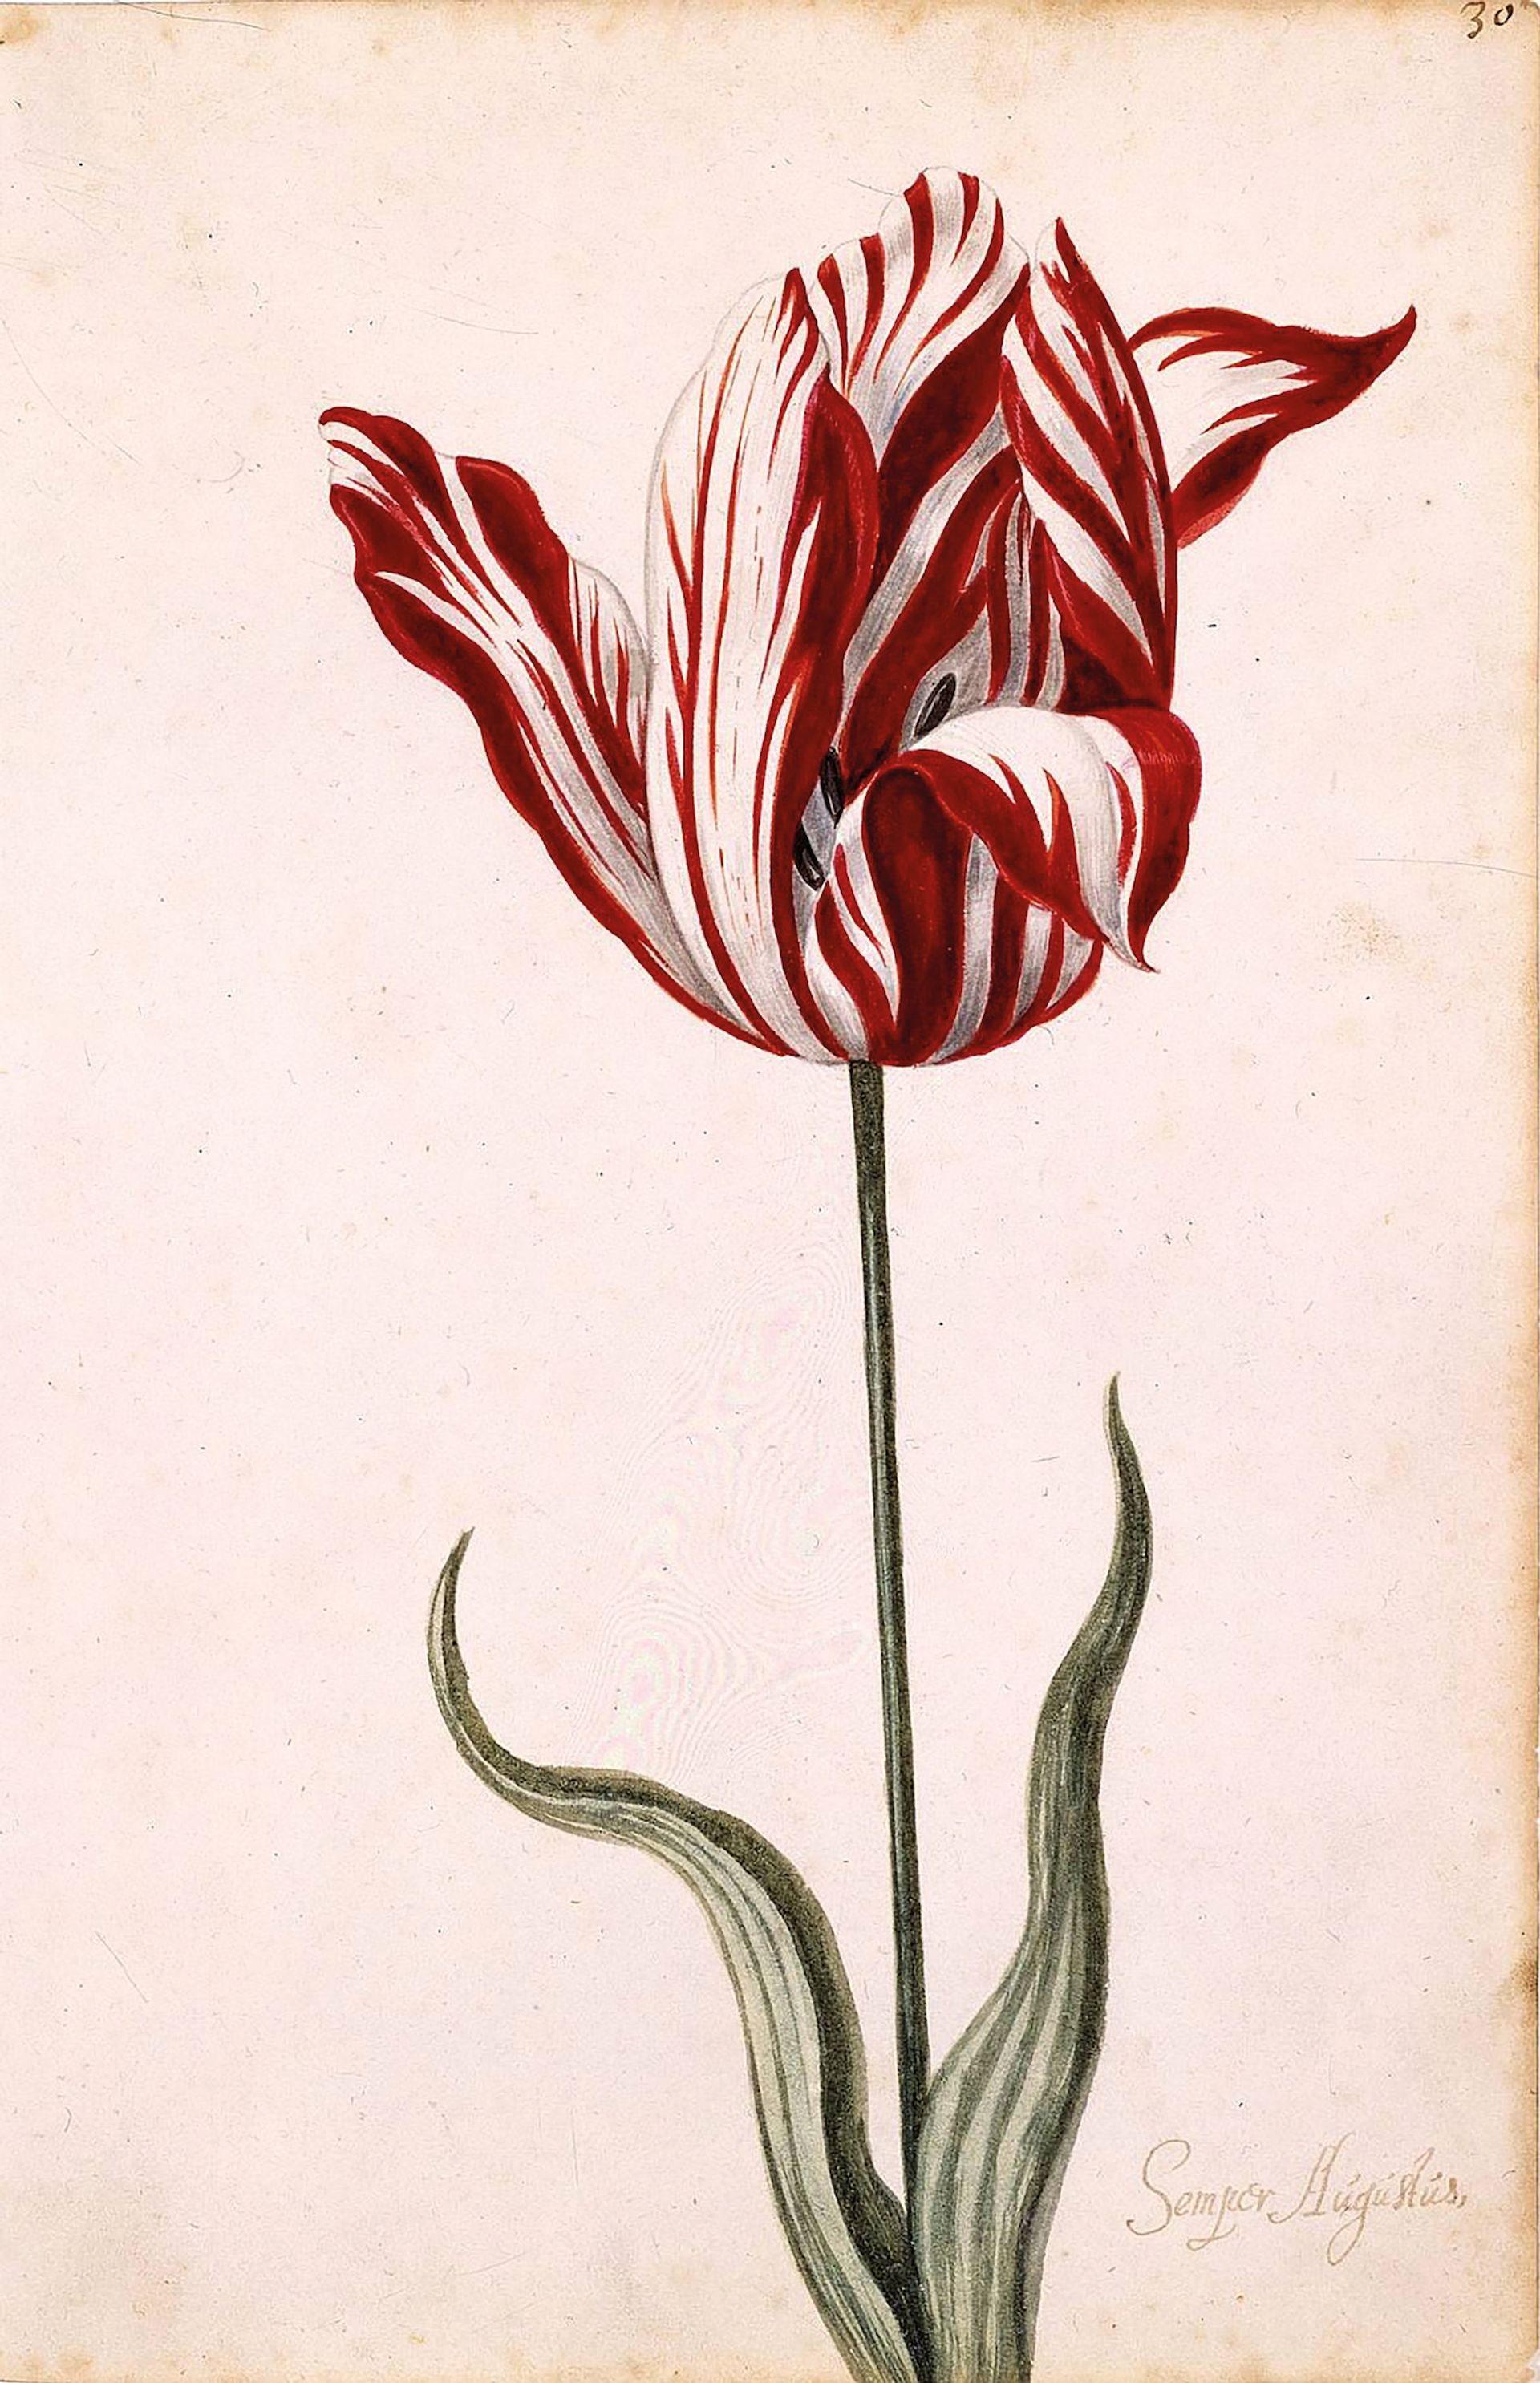 At tulipmania's peak in 17th-century Holland, specimens cost the same as a mansion Norton Simon Art Foundation